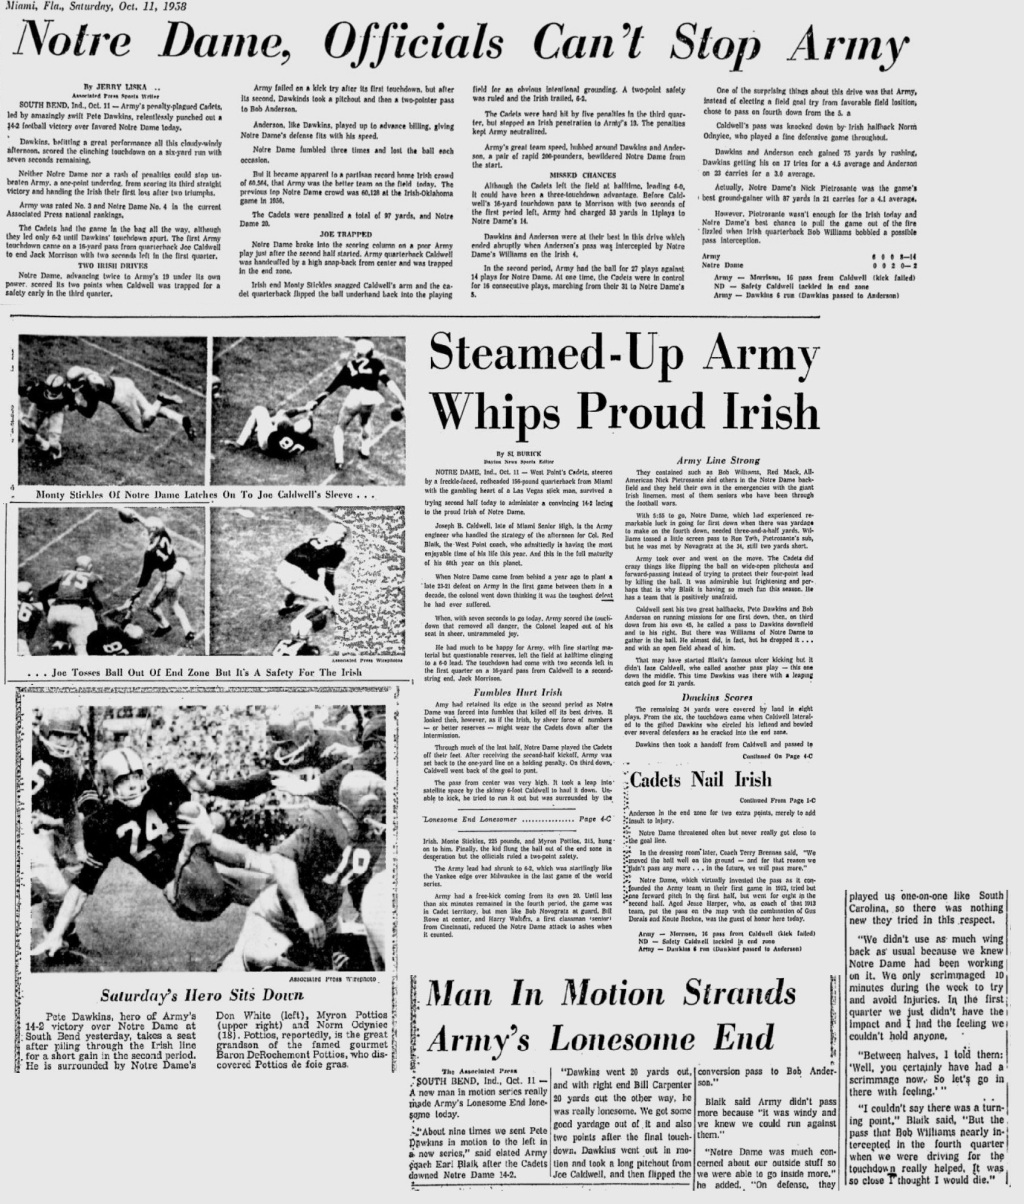 ArmyFB_1958_vsNotreDame_MiamiNews_Oct121958